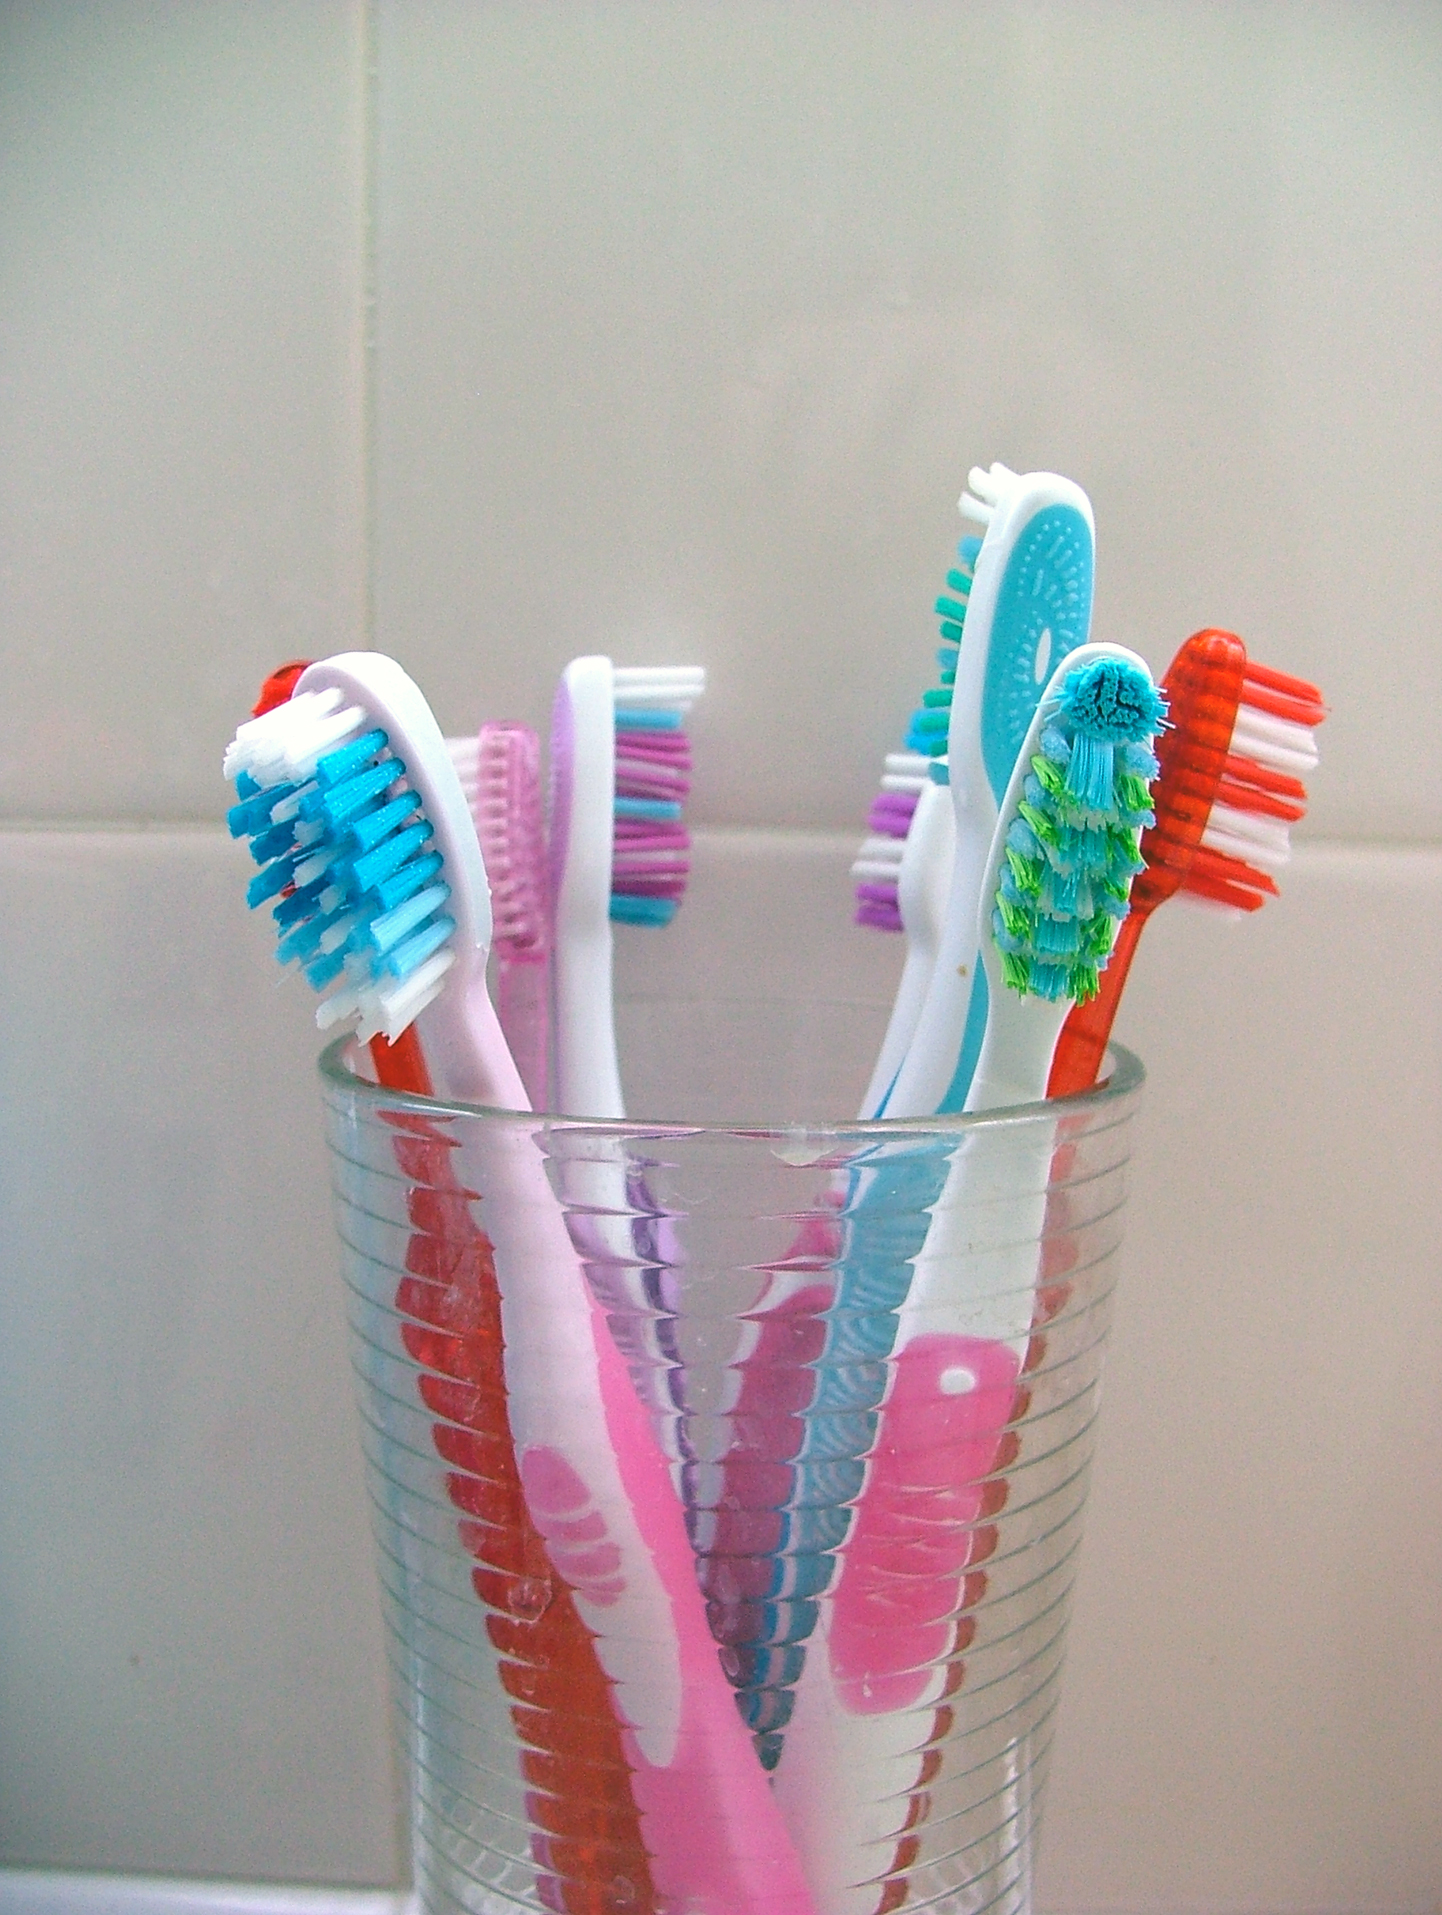 Toothbrushes photo